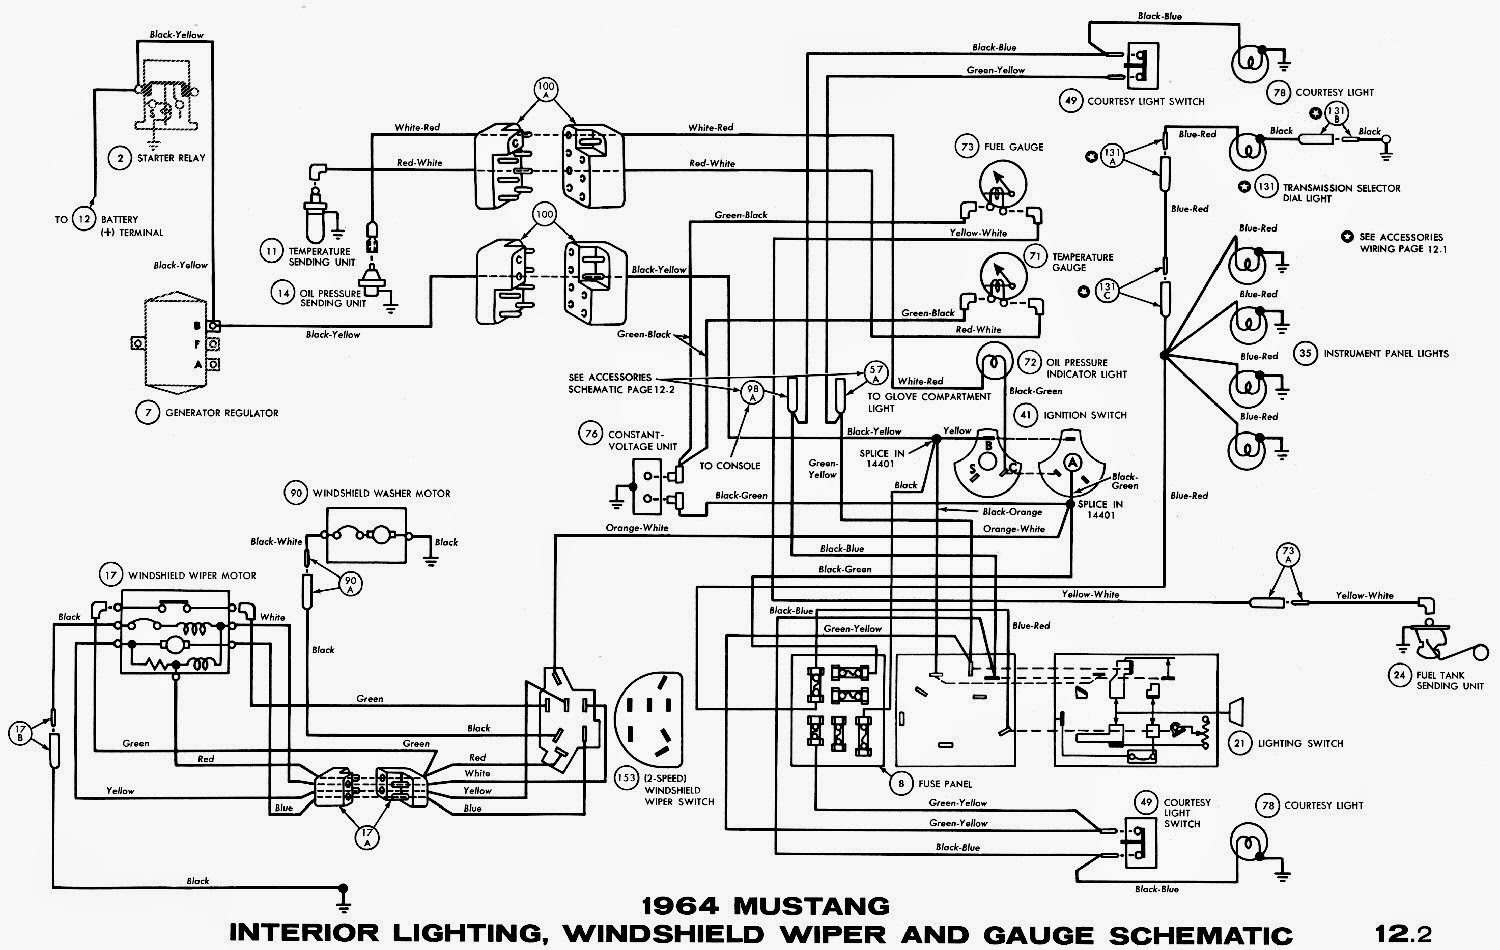 small resolution of 1964 buick lesabre wiring diagram wiring diagram buick rendezvous fuse box diagram 1998 buick century fuse